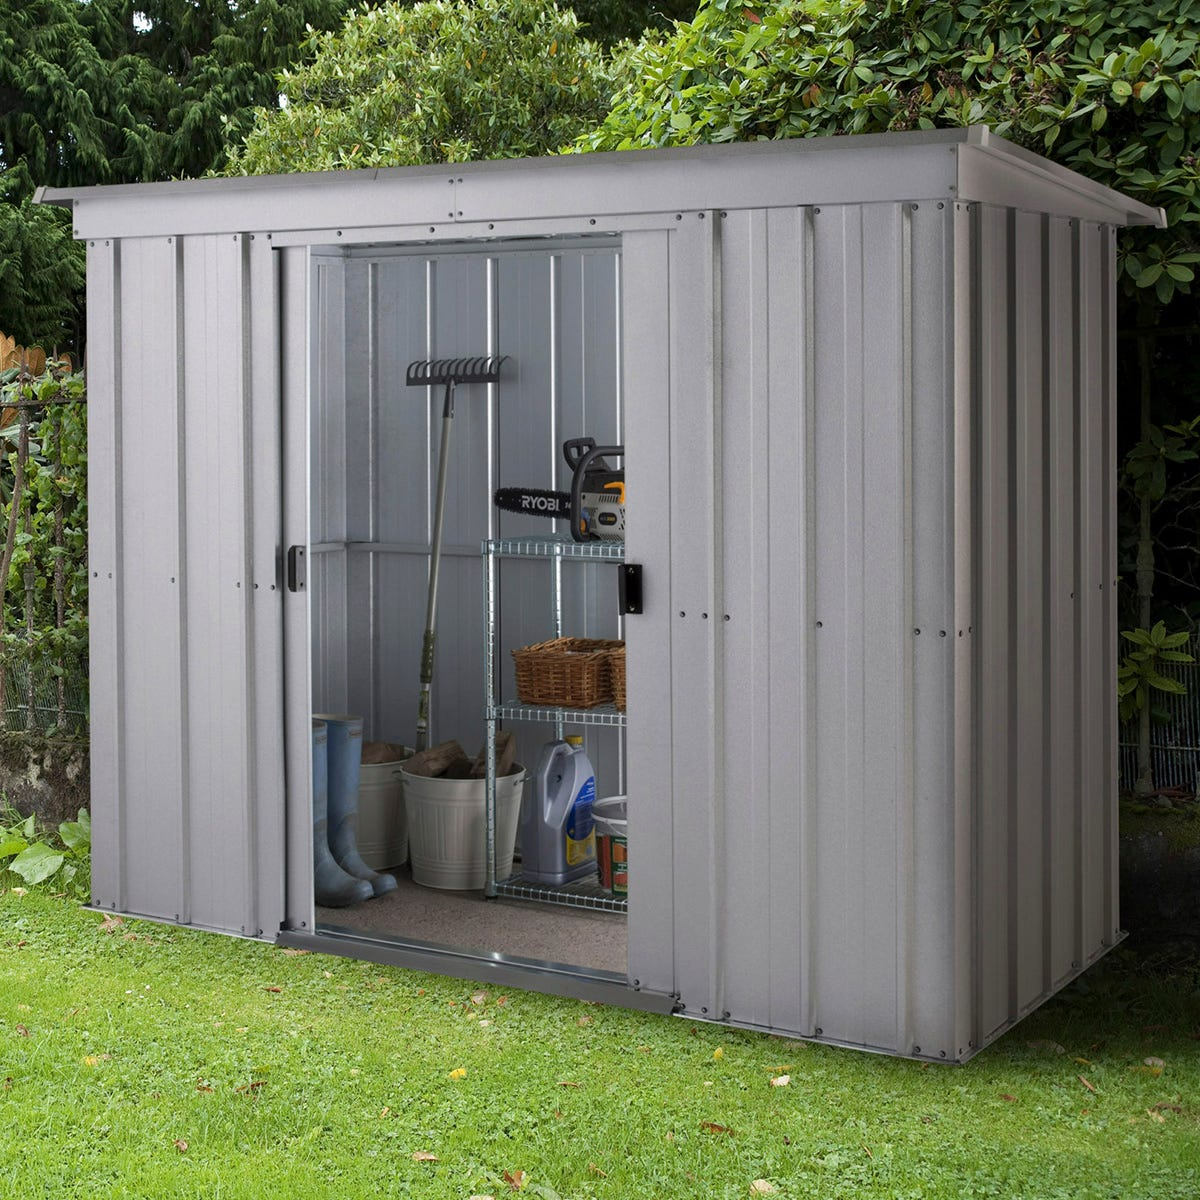 Yardmaster Store All Metal Pent Shed 8 x 4ft with Floor Support Frame